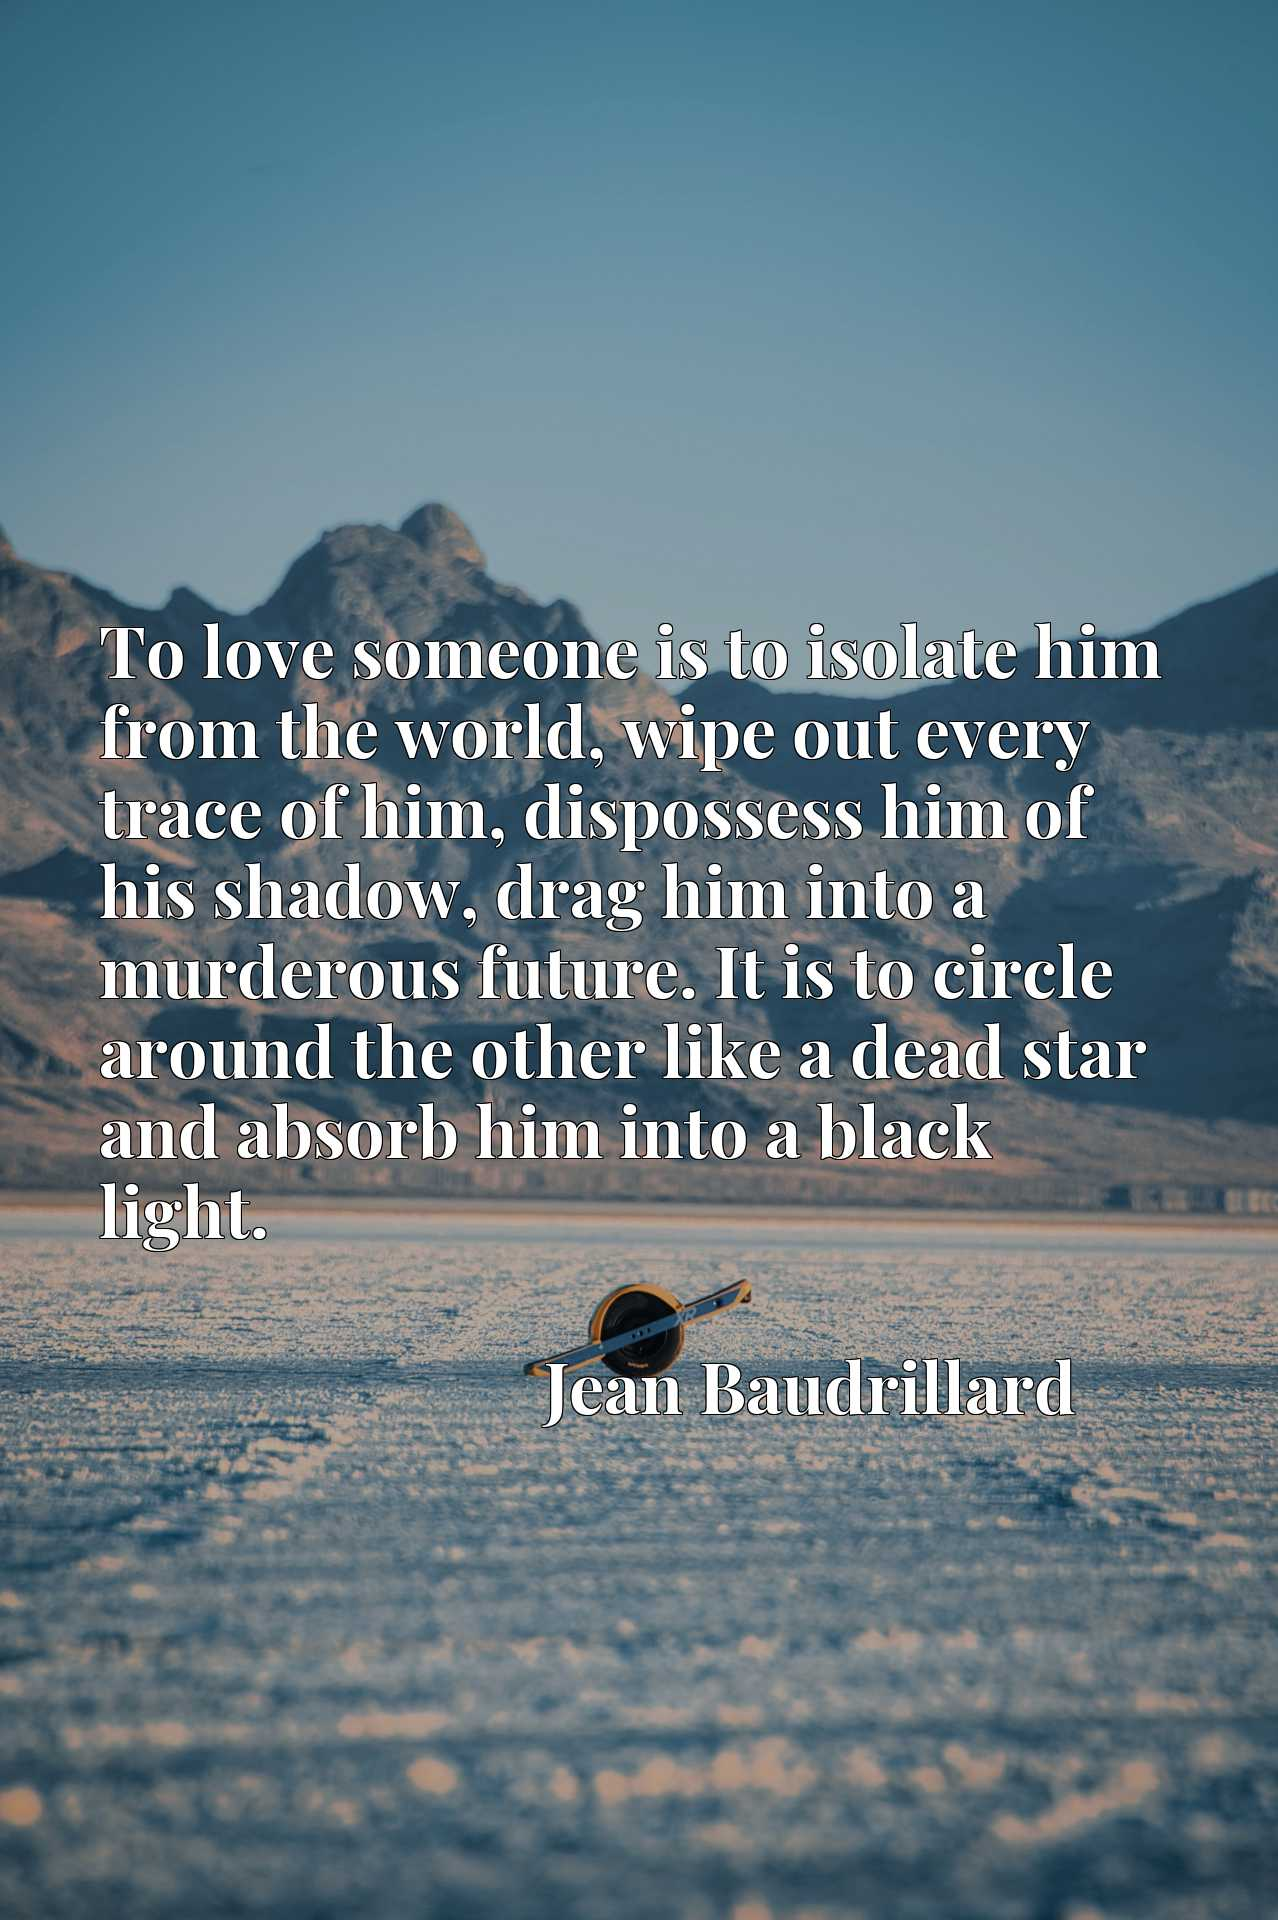 To love someone is to isolate him from the world, wipe out every trace of him, dispossess him of his shadow, drag him into a murderous future. It is to circle around the other like a dead star and absorb him into a black light.